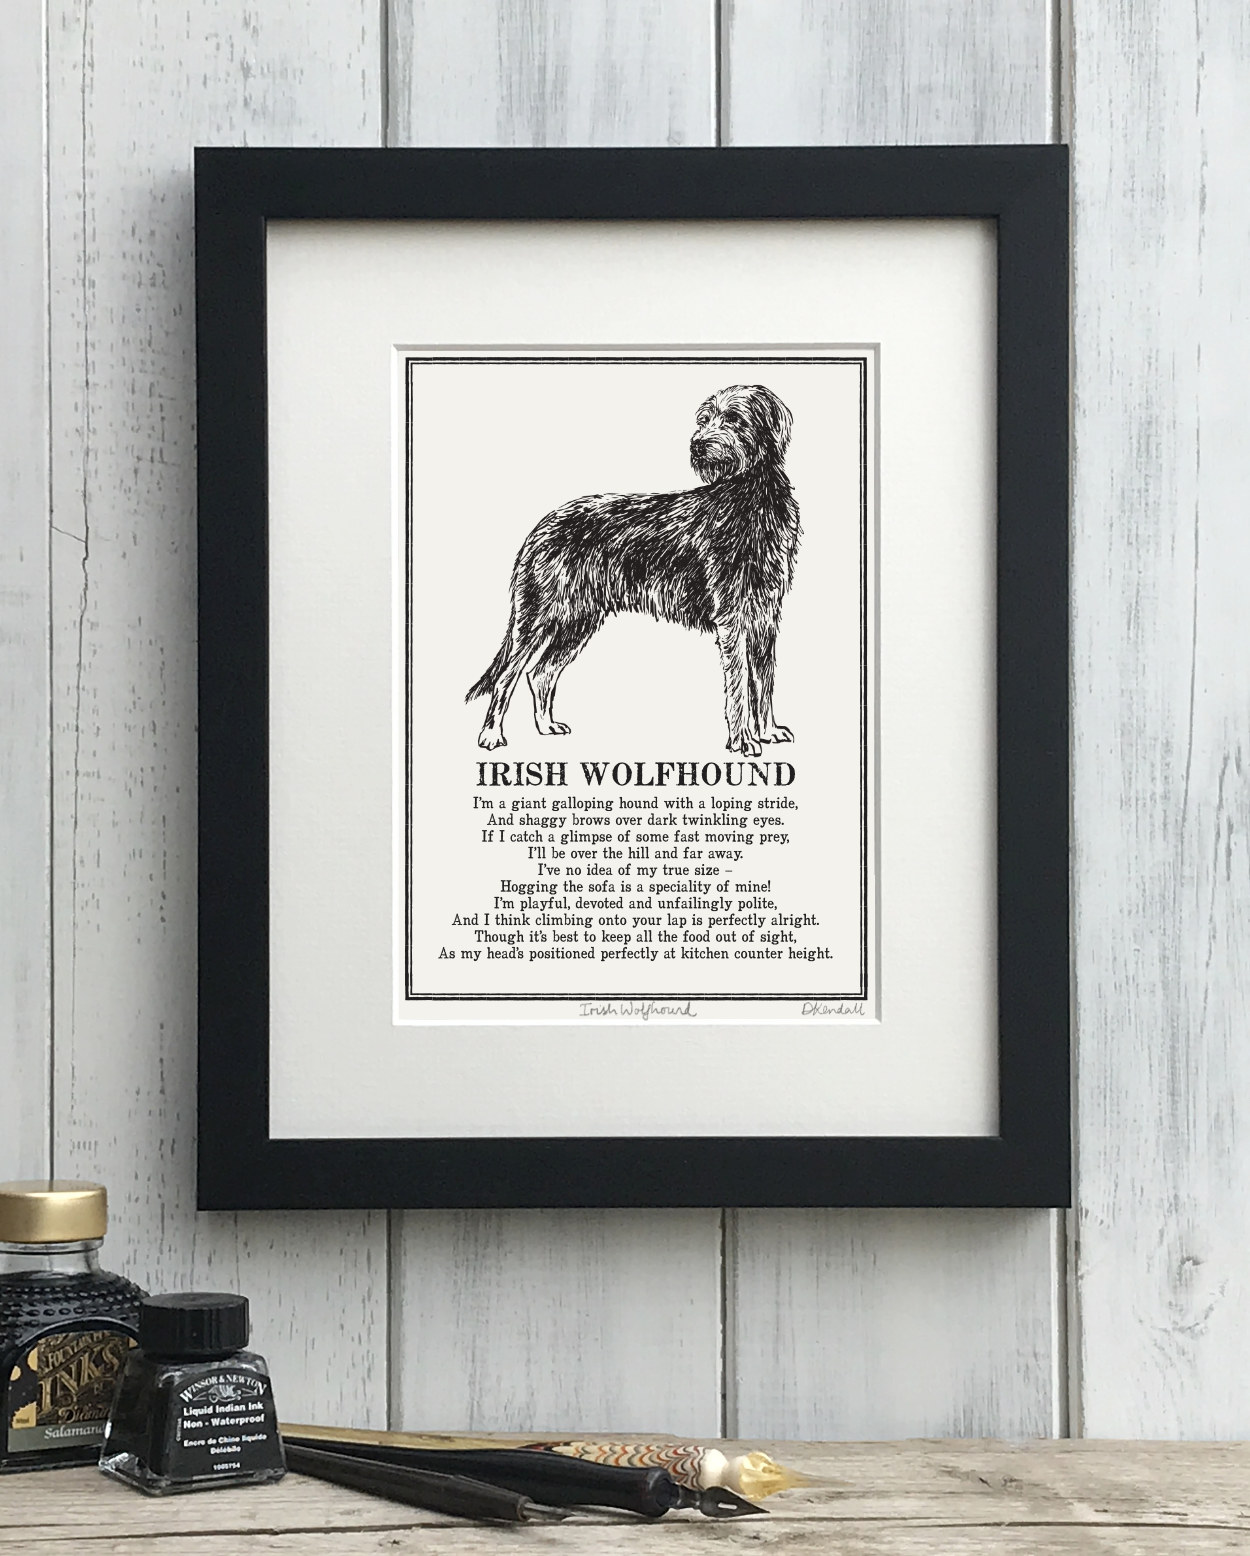 Irish Wolfhound  Doggerel Illustrated Poem Art Print | The Enlightened Hound